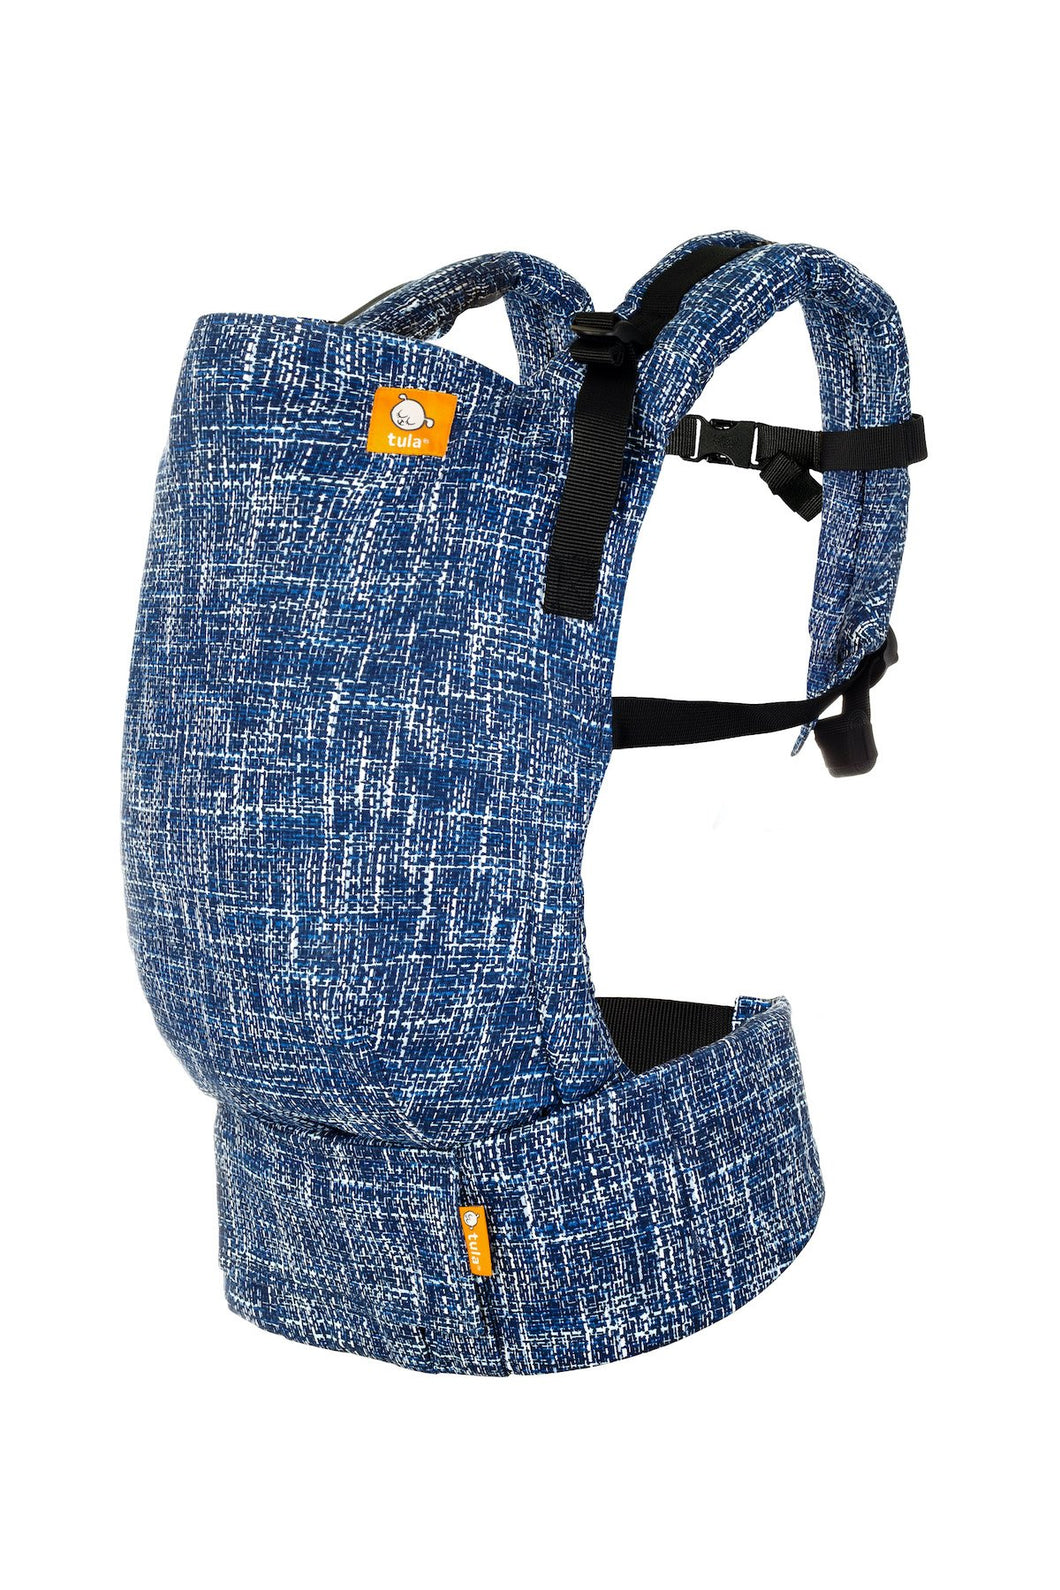 Blues - Tula Free-to-Grow Baby Carrier